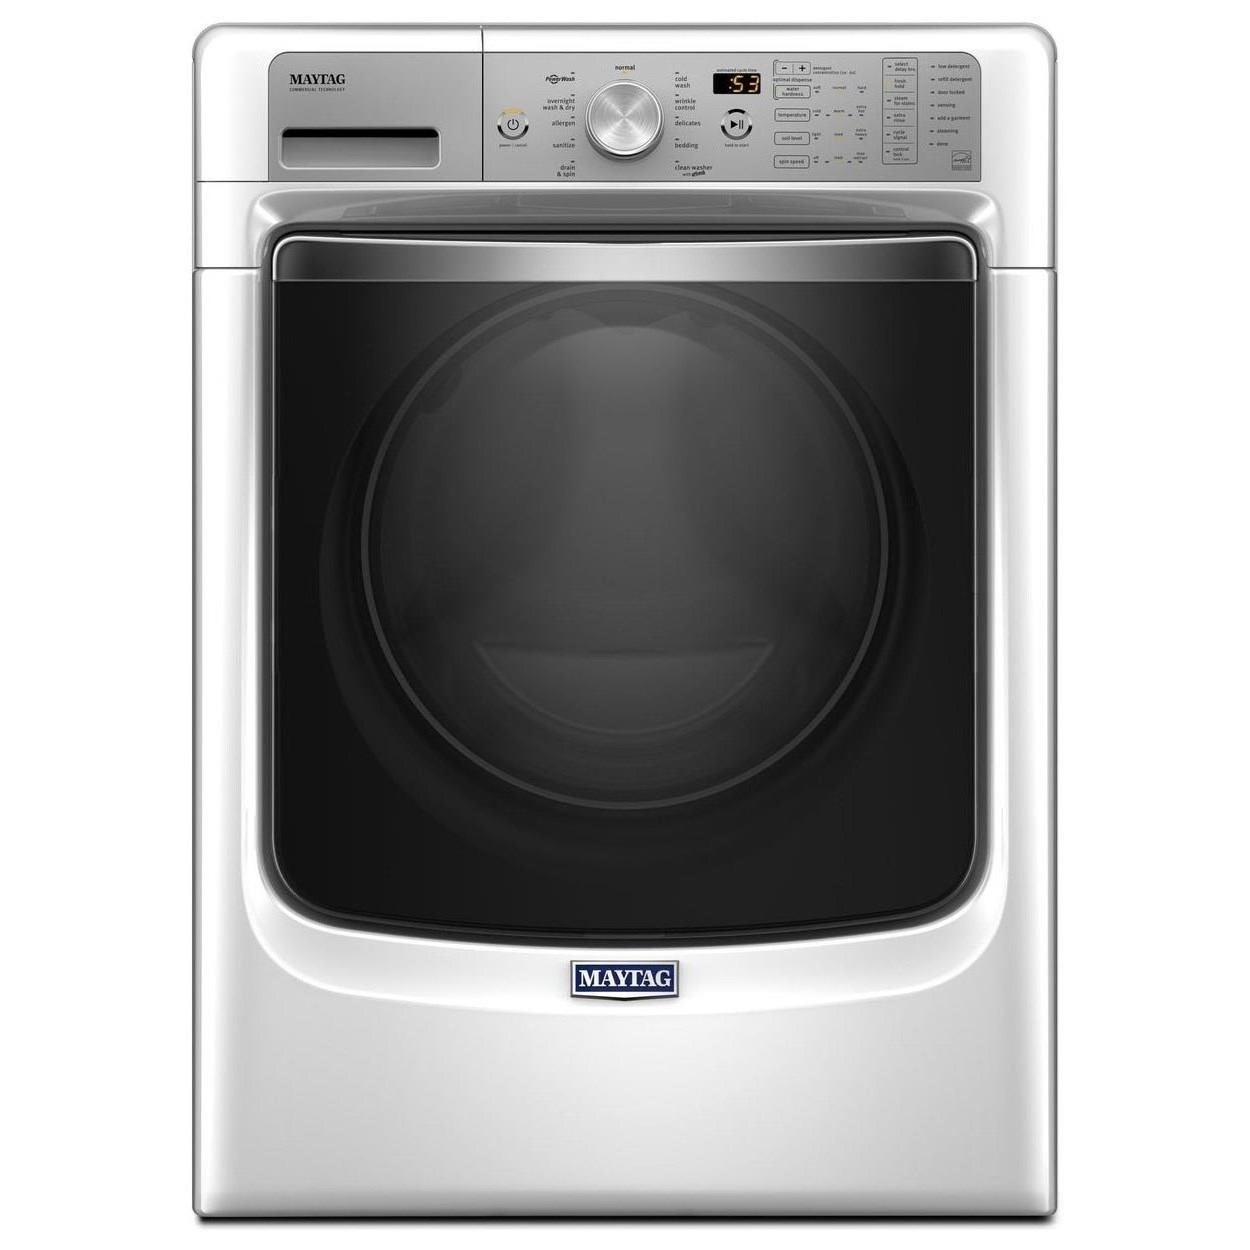 Maytag Front Load Washers 8200 Series 4.5 Cu. Ft. Front Load Washer - Item Number: MHW8200FW